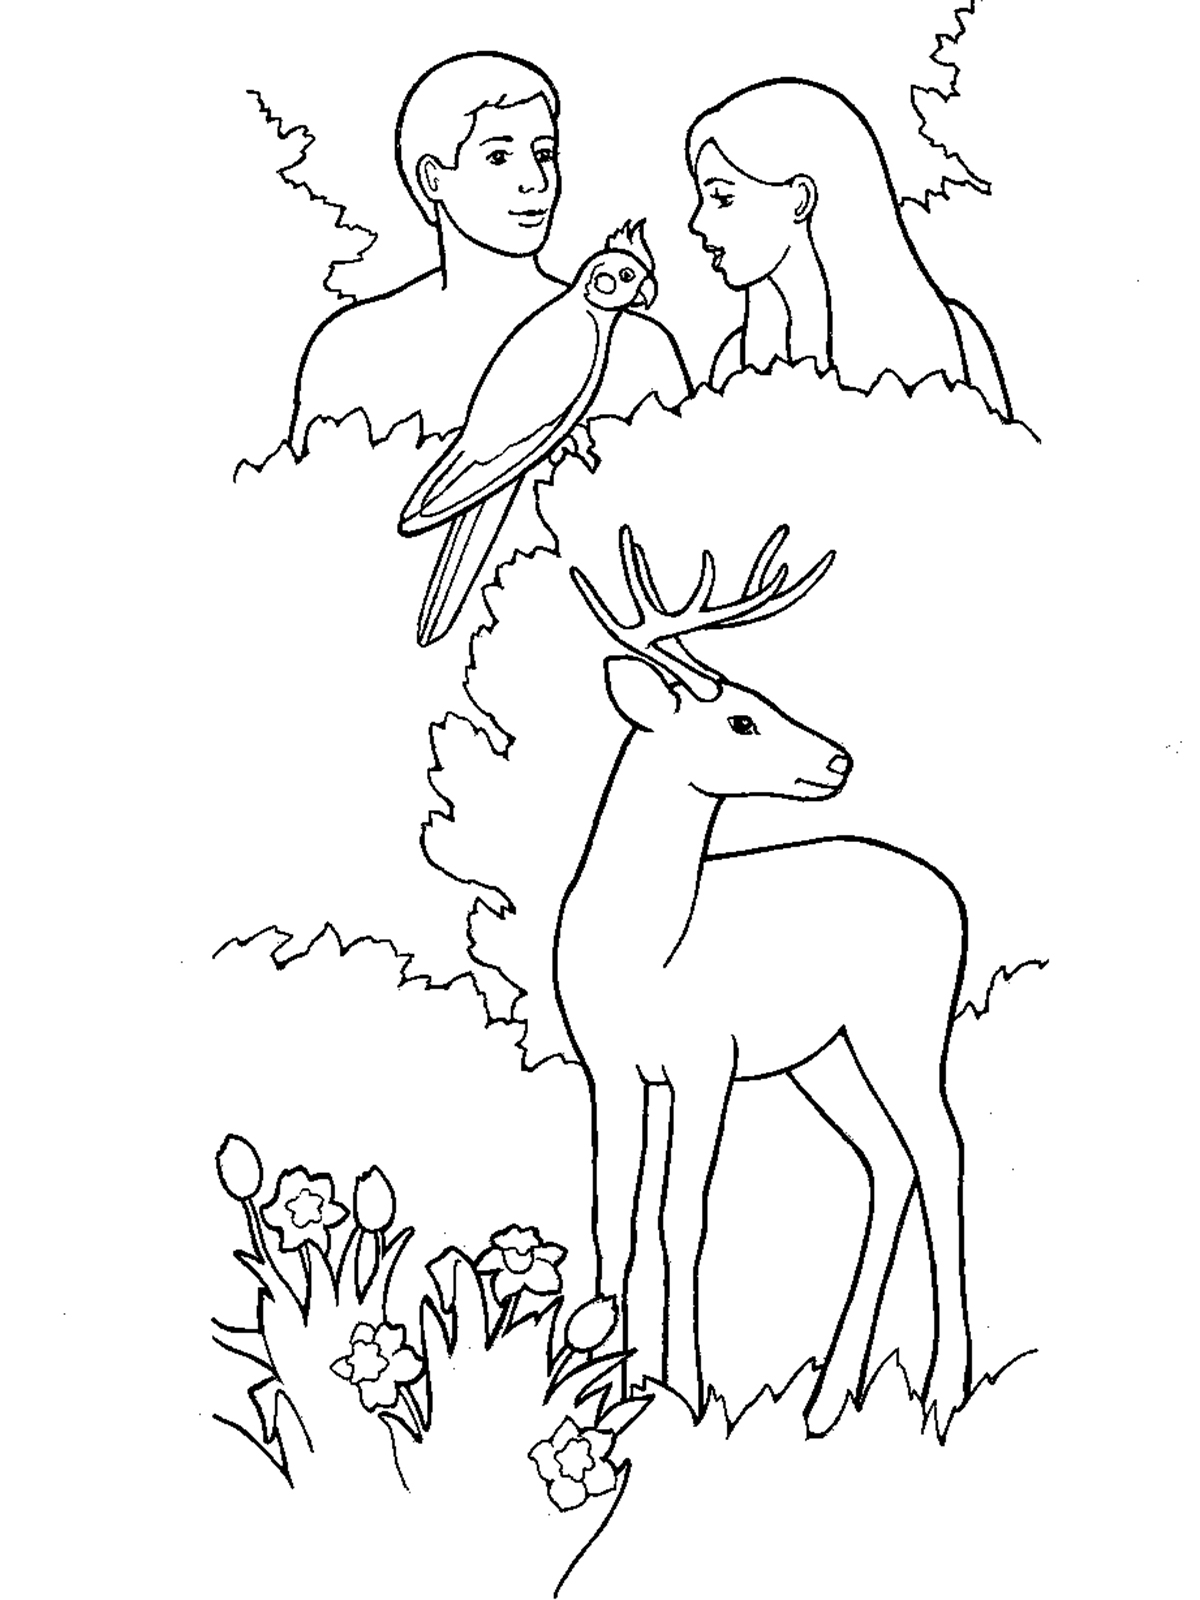 Lds Plan Salvation Coloring Page